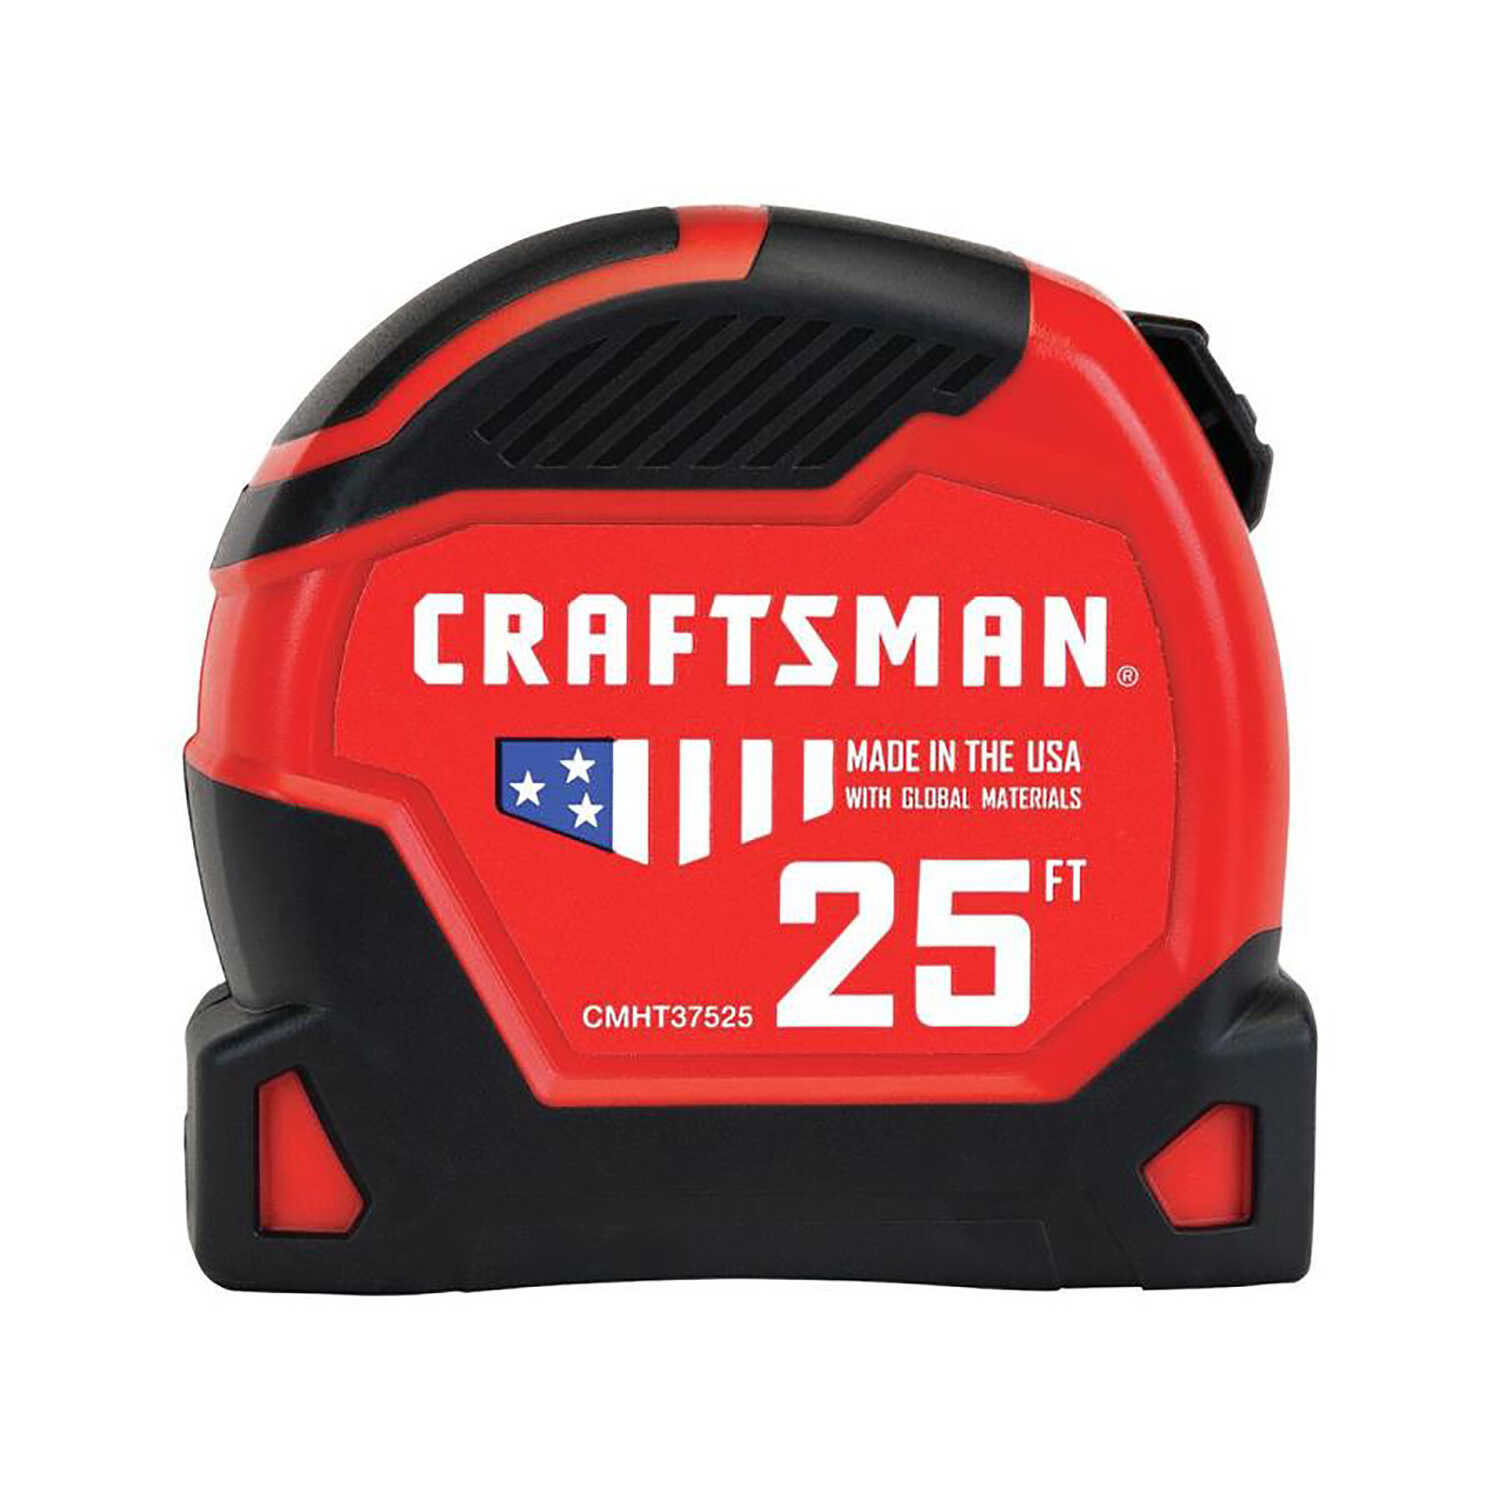 Craftsman  25 ft. L x 1.25 in. W Tape Measure  Black/Red  1 pk